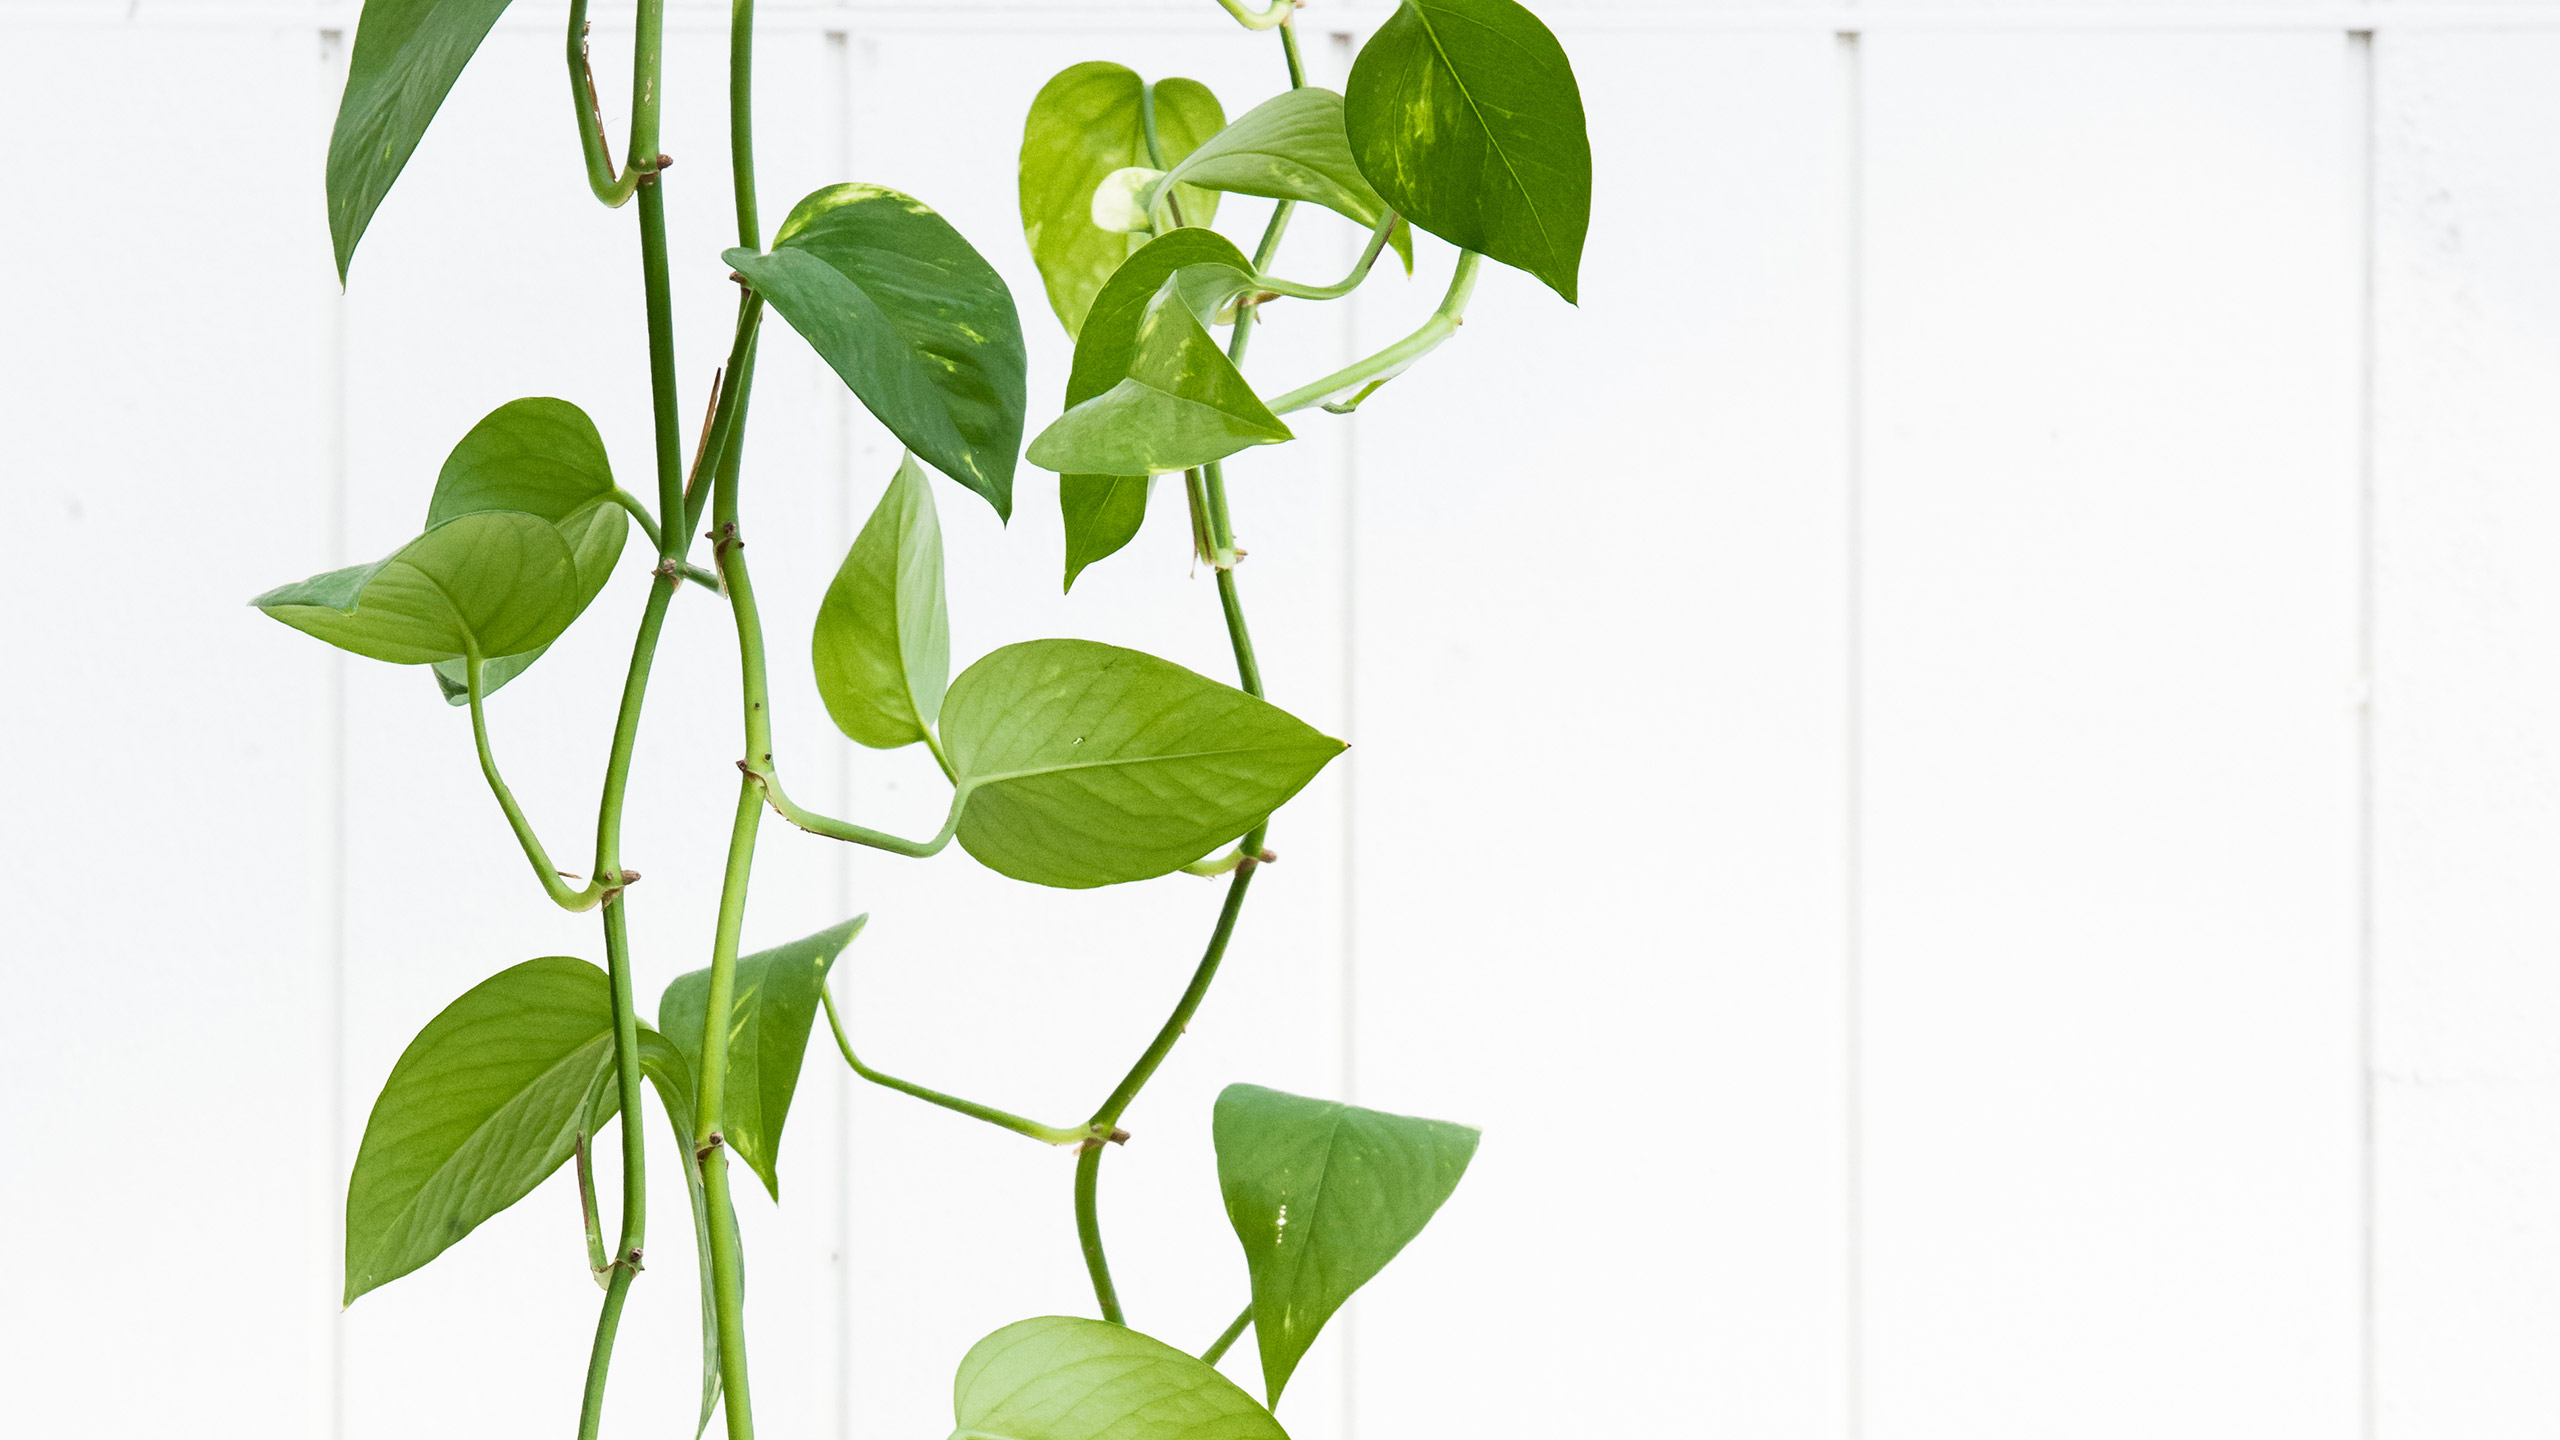 5 Indoor Plants You Can Get and (Almost) Forget : Mulhall's on colorful house plants, unusual house plants, green house plants, indoor plants, caring for house plants, fruit non edible plants, water house plants, rare house plants, minnesota house plants, climbing house plants, trailing house plants, dumb cane house plants, potted house plants, viney house plants, tropical house plants, best house plants, watering house plants, japanese house plants, small house plants, tall house plants,